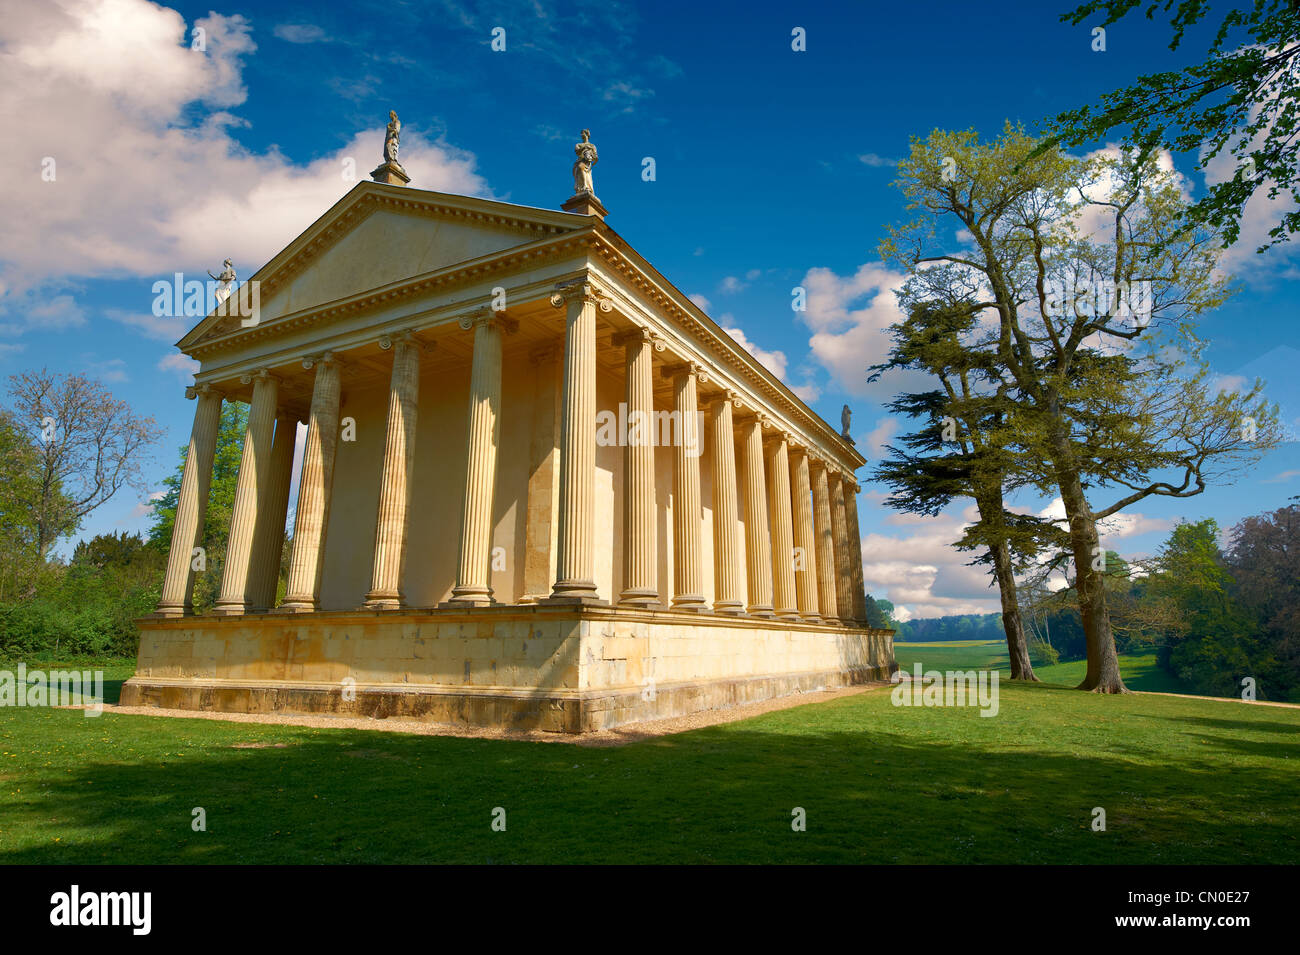 Neo Classic Greek Temple in the landscape gardens of Stowe House, the former residence of the Dukes of Buckingham - Stock Image